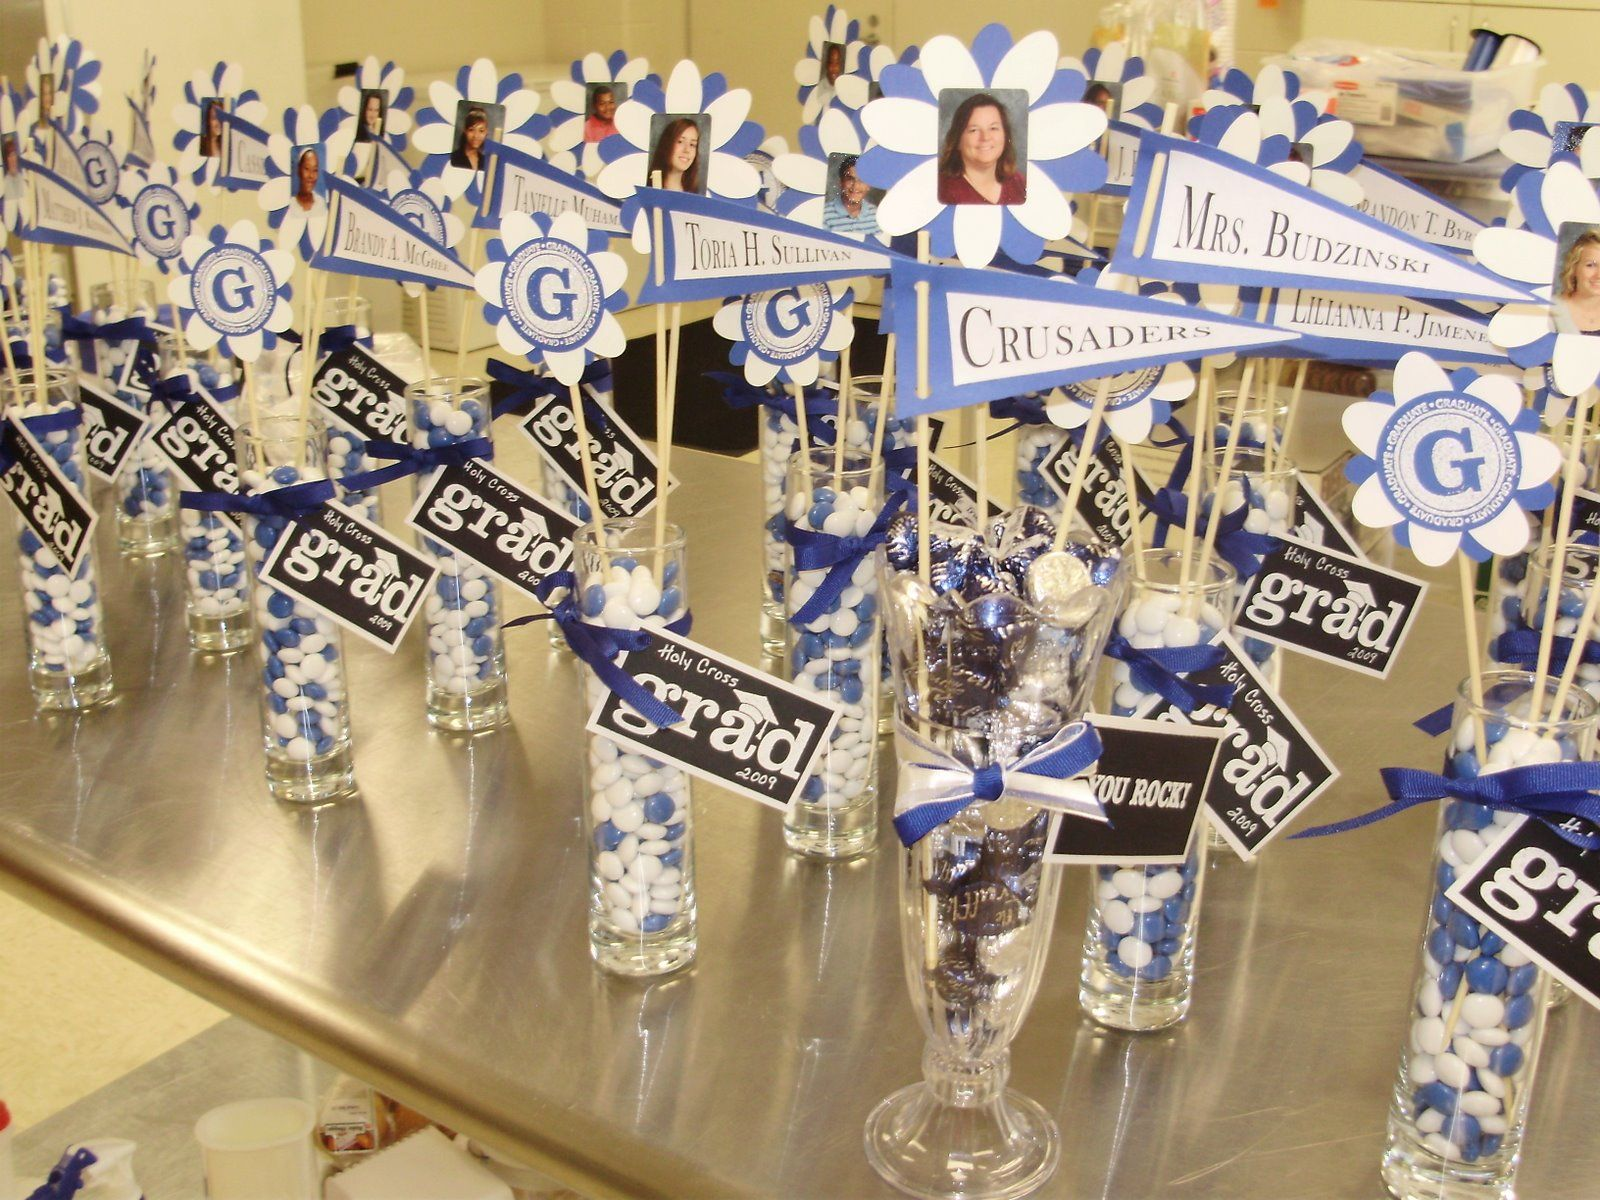 Graduation table decorations homemade - Graduation Party Centerpieces Ideas Here Are Some General Tips For Creating A Graduation Centerpiece